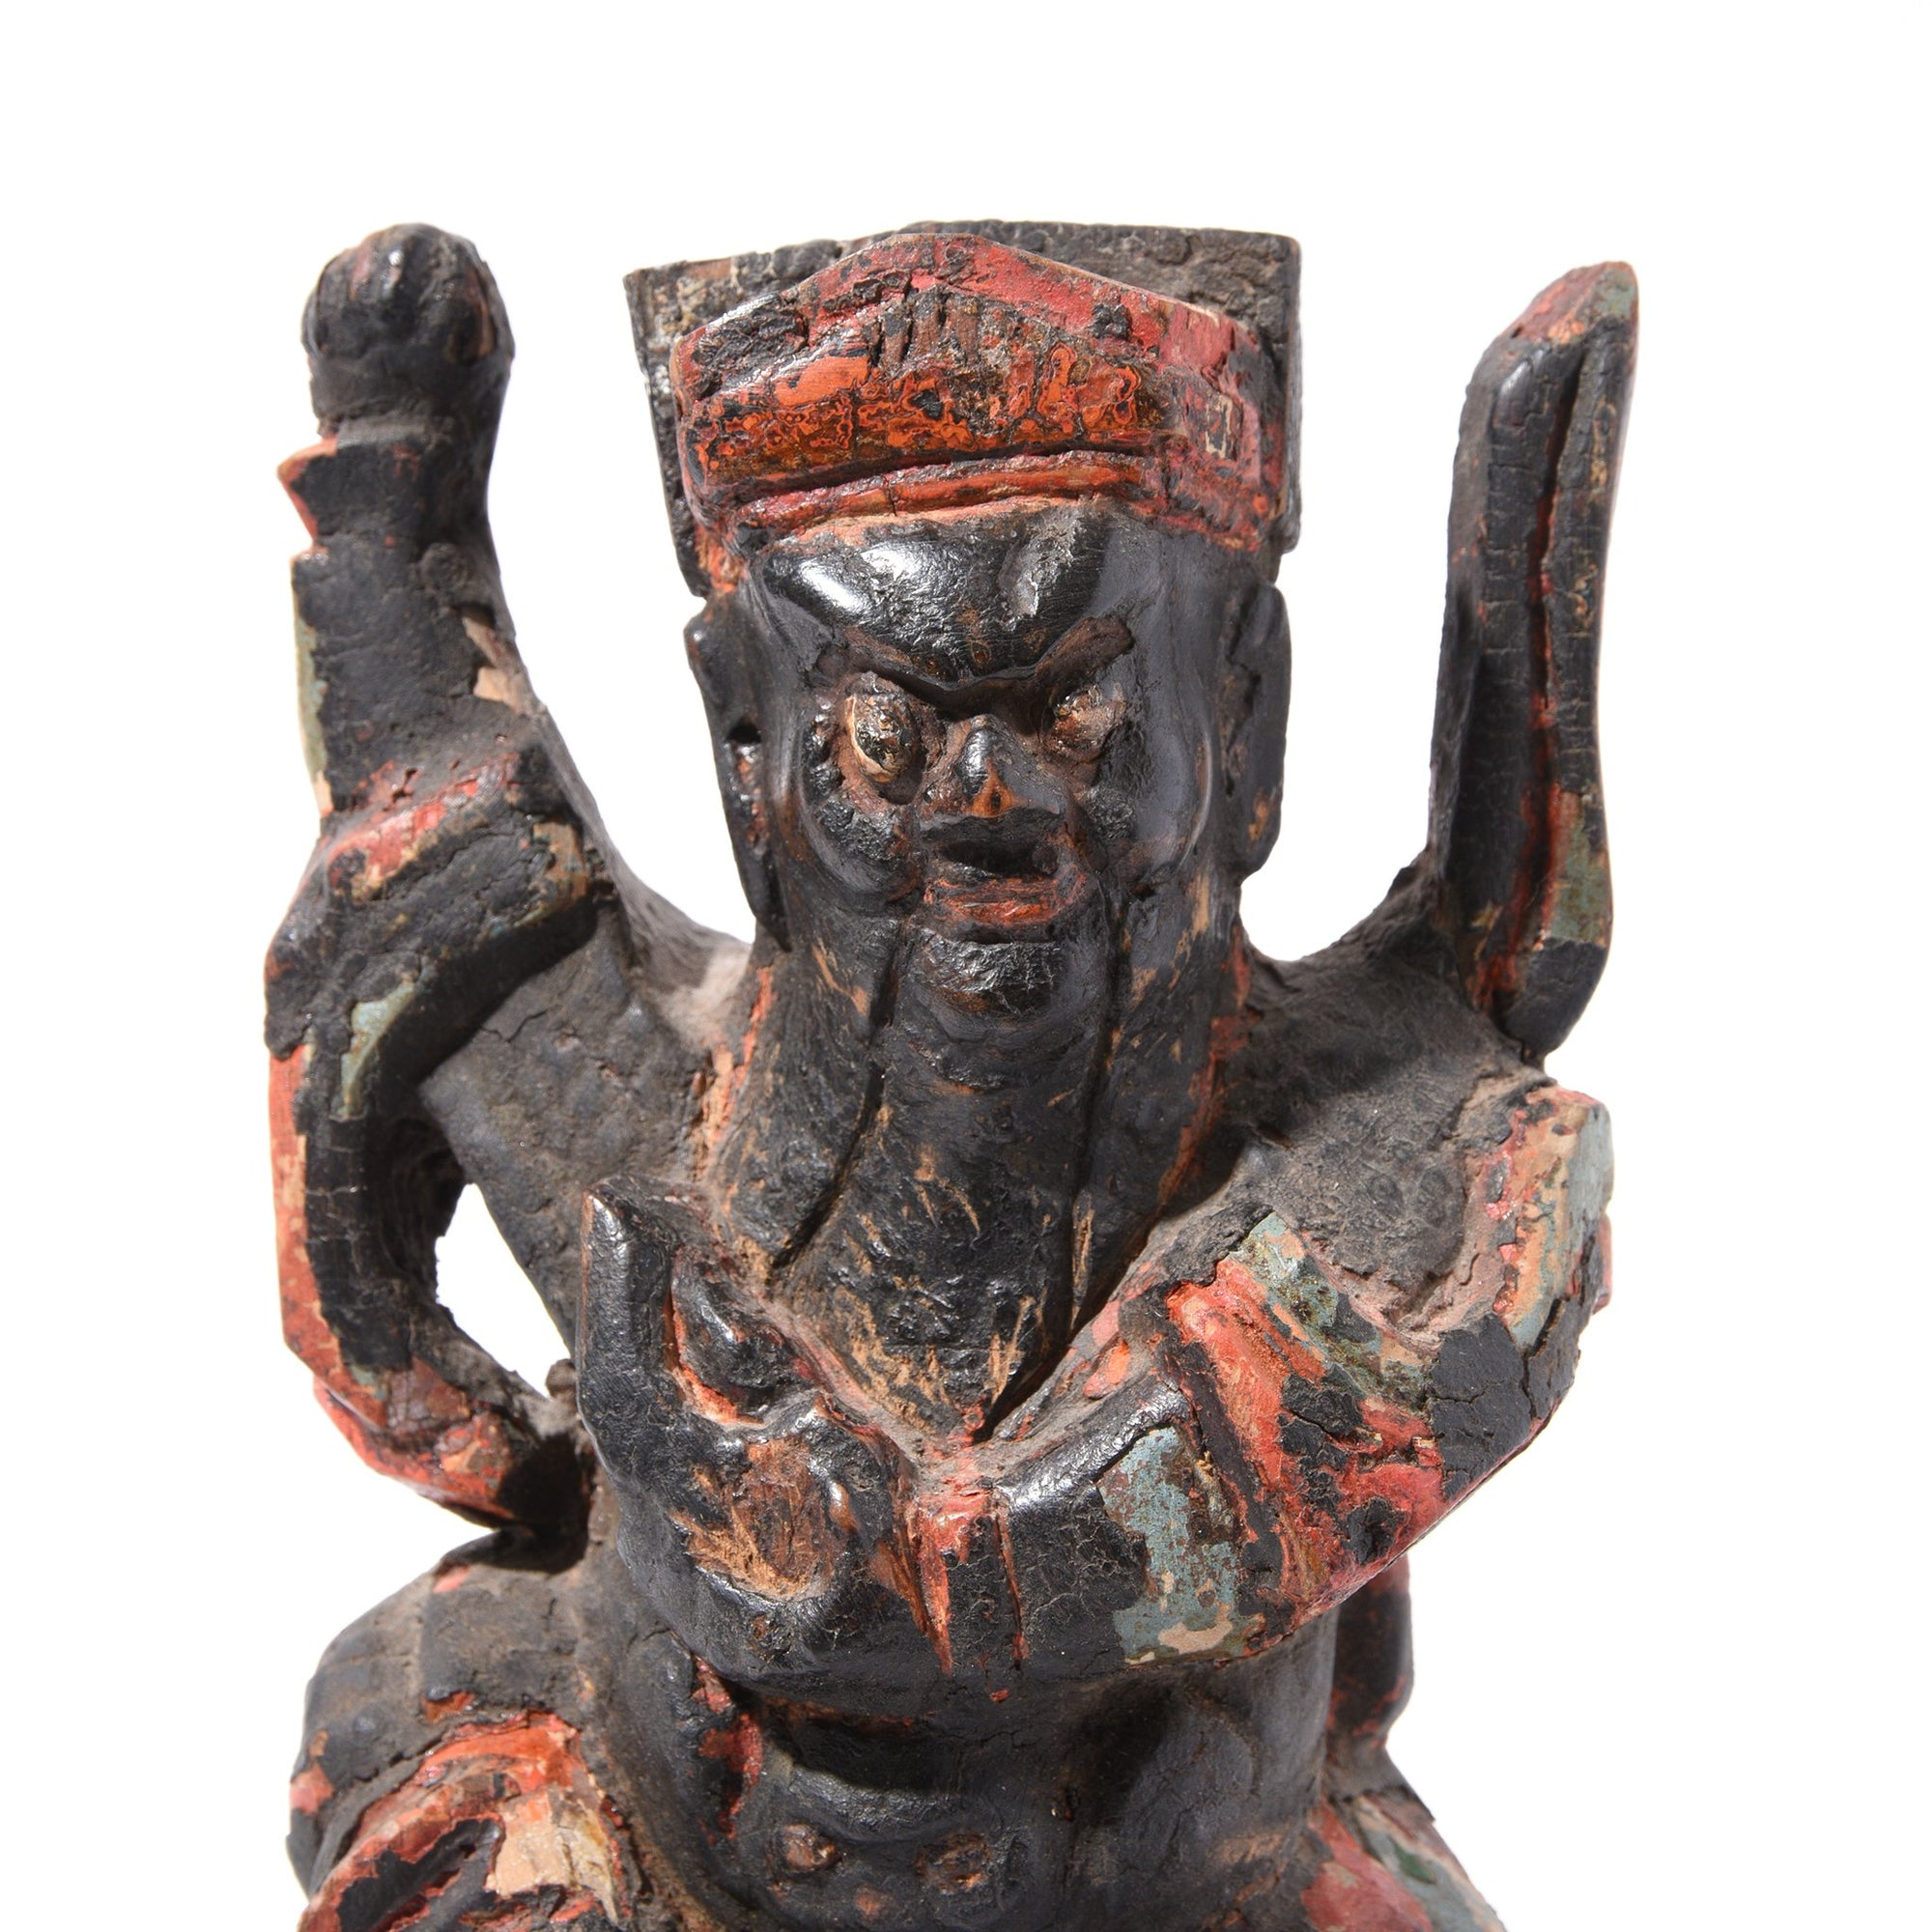 Chinese Immortal or Ancestor Figure - 19thC | Indigo Antiques